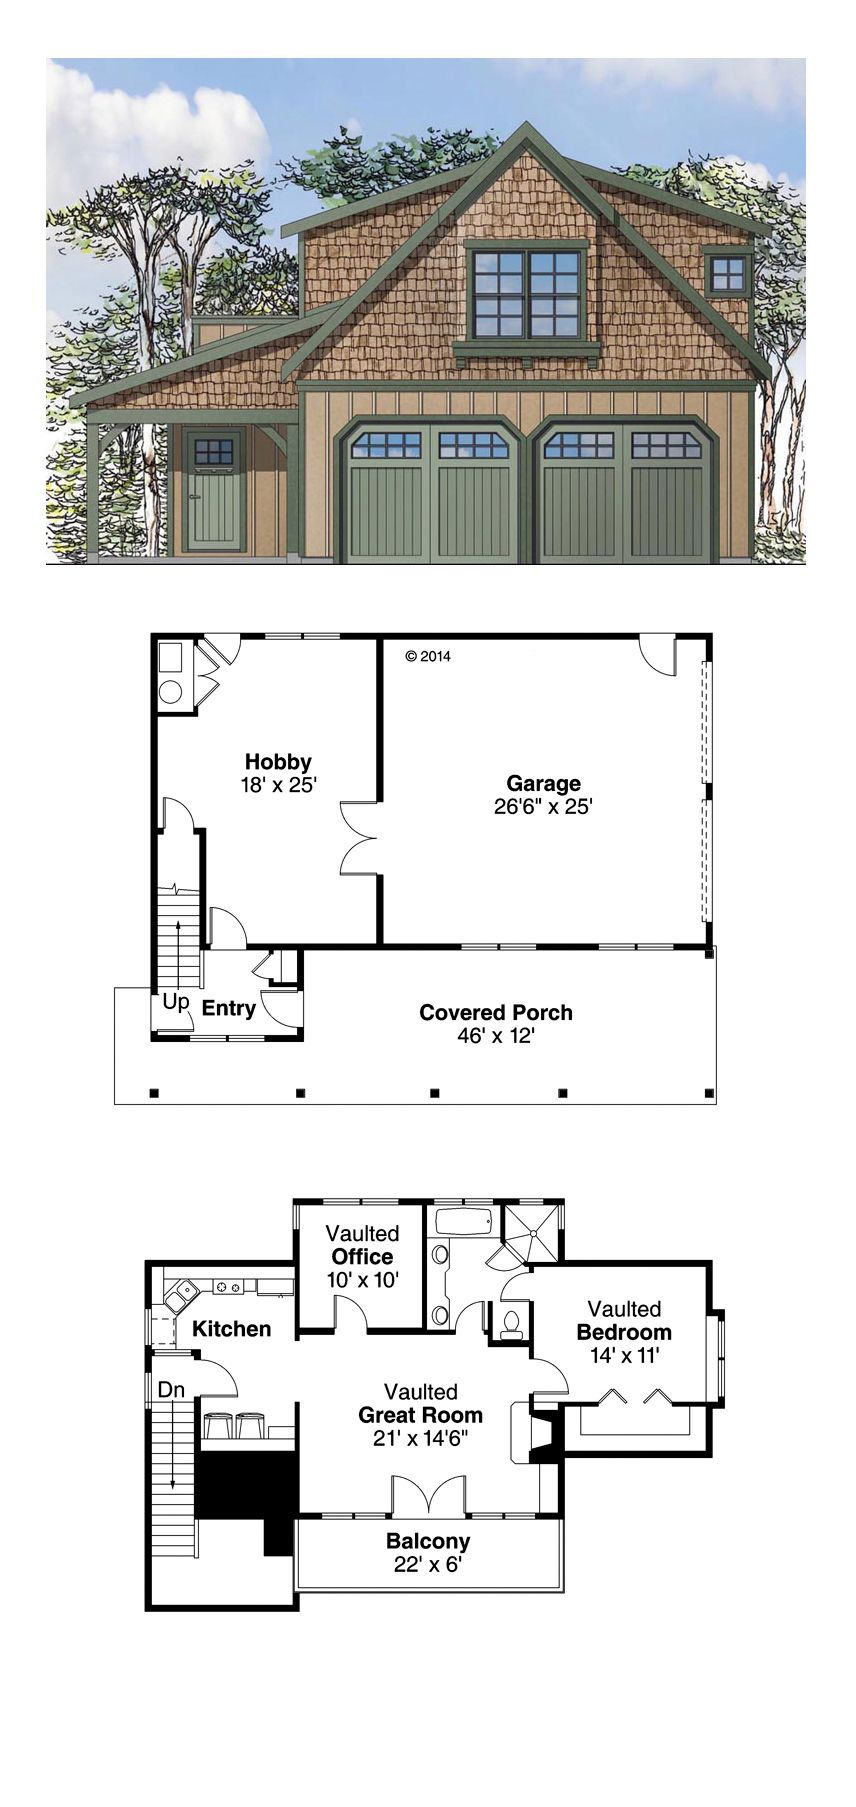 Garage with Guest House Plans Elegant European Style 2 Car Garage Apartment Plan Number with